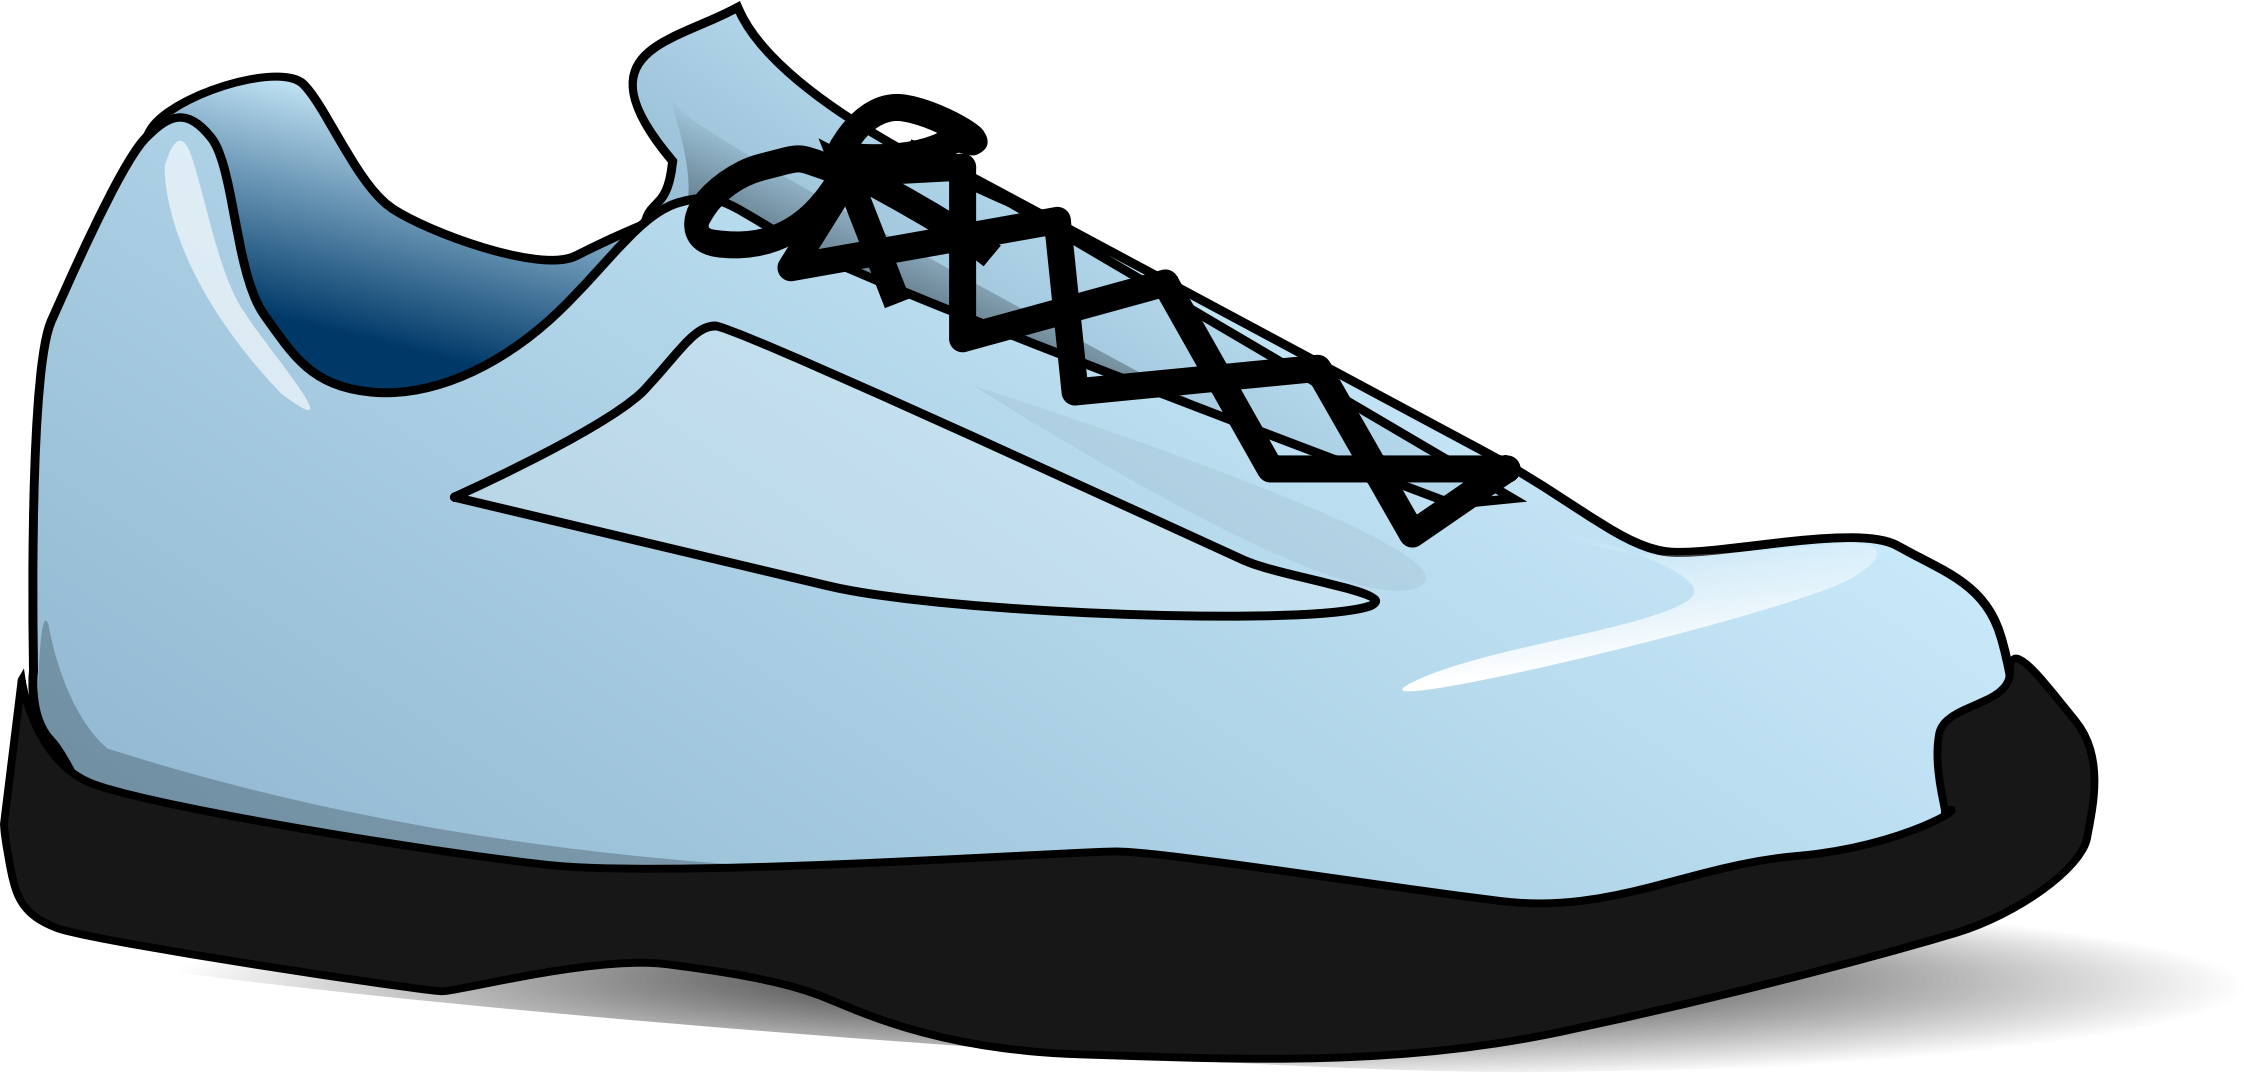 Basketball shoe clipart picture download Nike Shoes Clipart at GetDrawings.com | Free for personal use Nike ... picture download